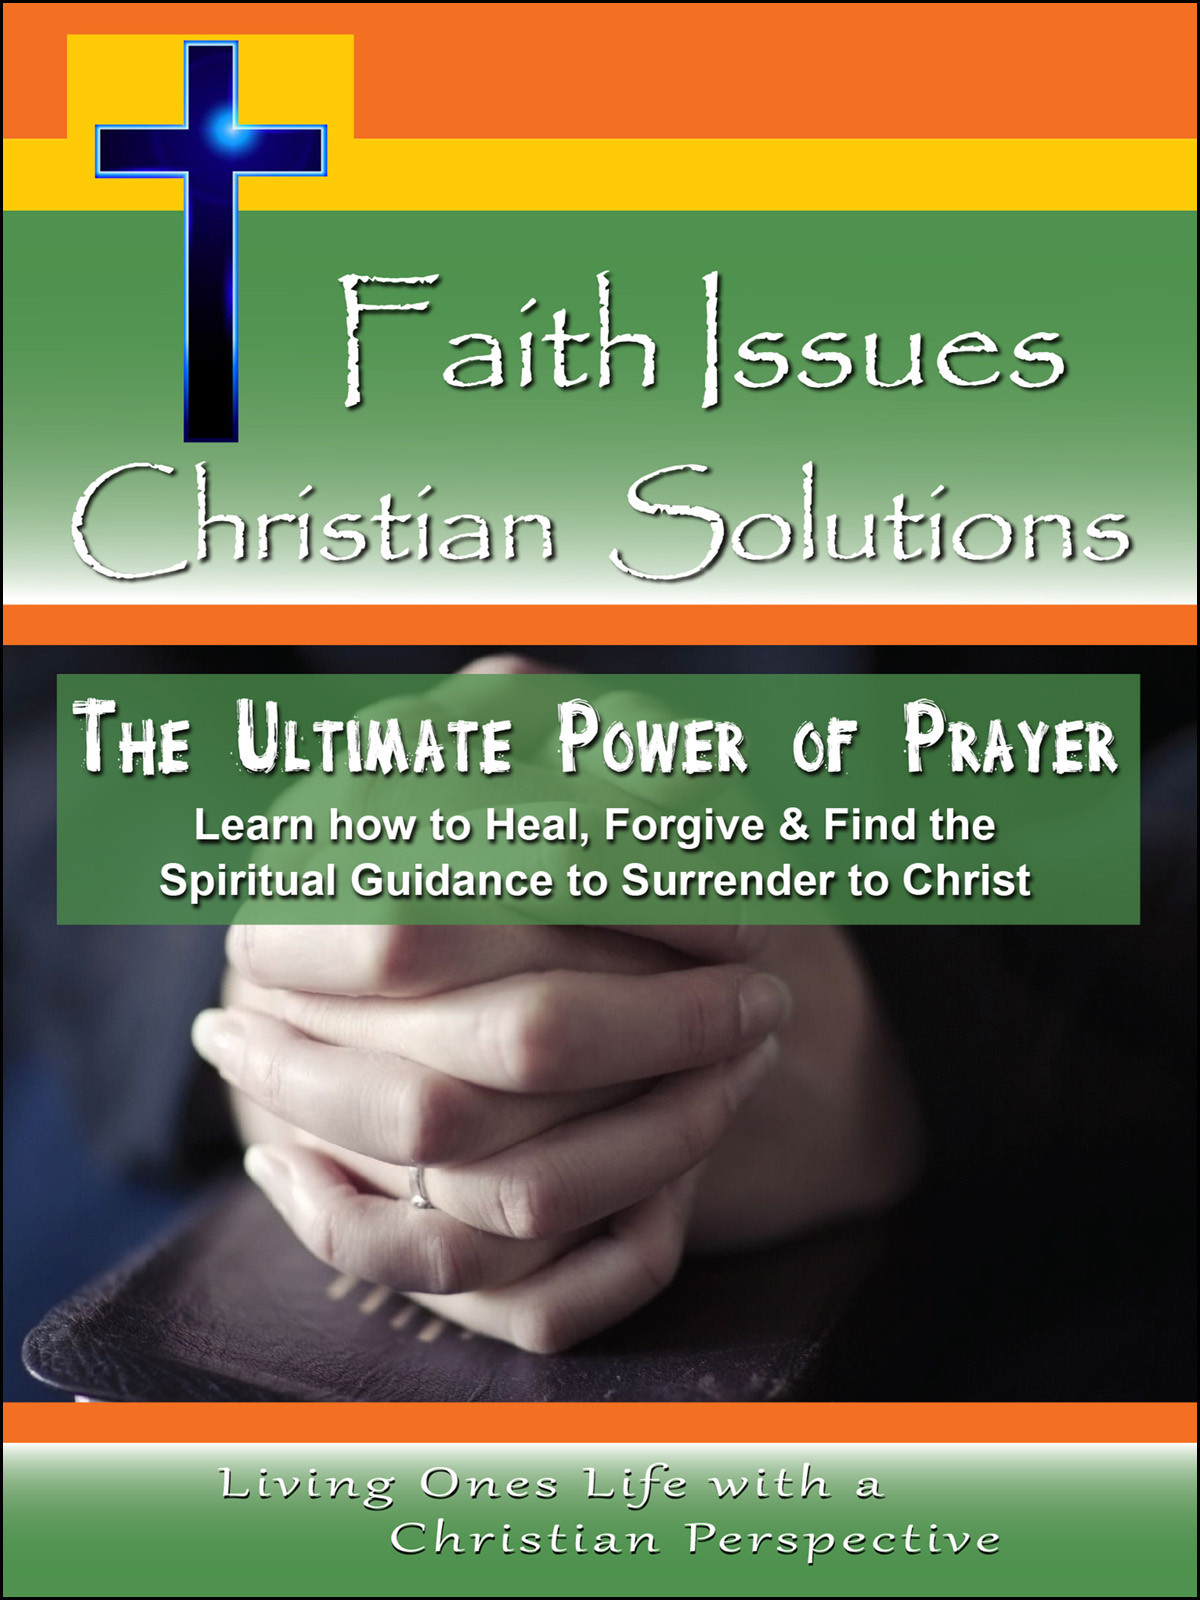 CH10046 - The Ultimate Power of Prayer Learn how to Heal, Forgive & Find the Spiritual Guidance to Surrender to Christ